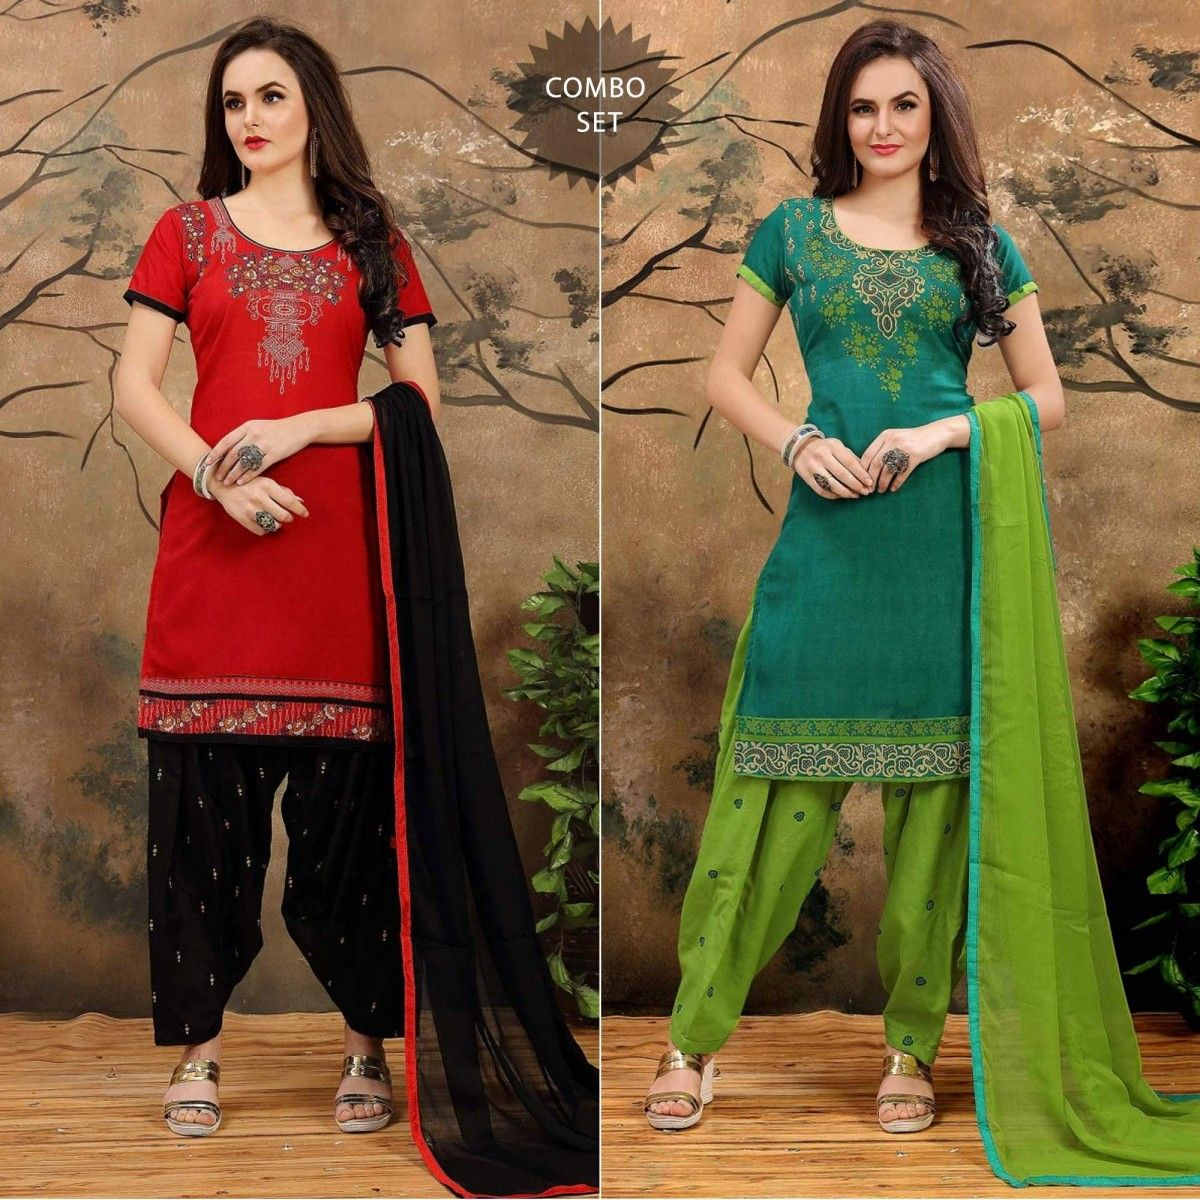 b609292366 Buy Red - Green Printed Patiala Combo at Rs. 949- Get latest combo packs